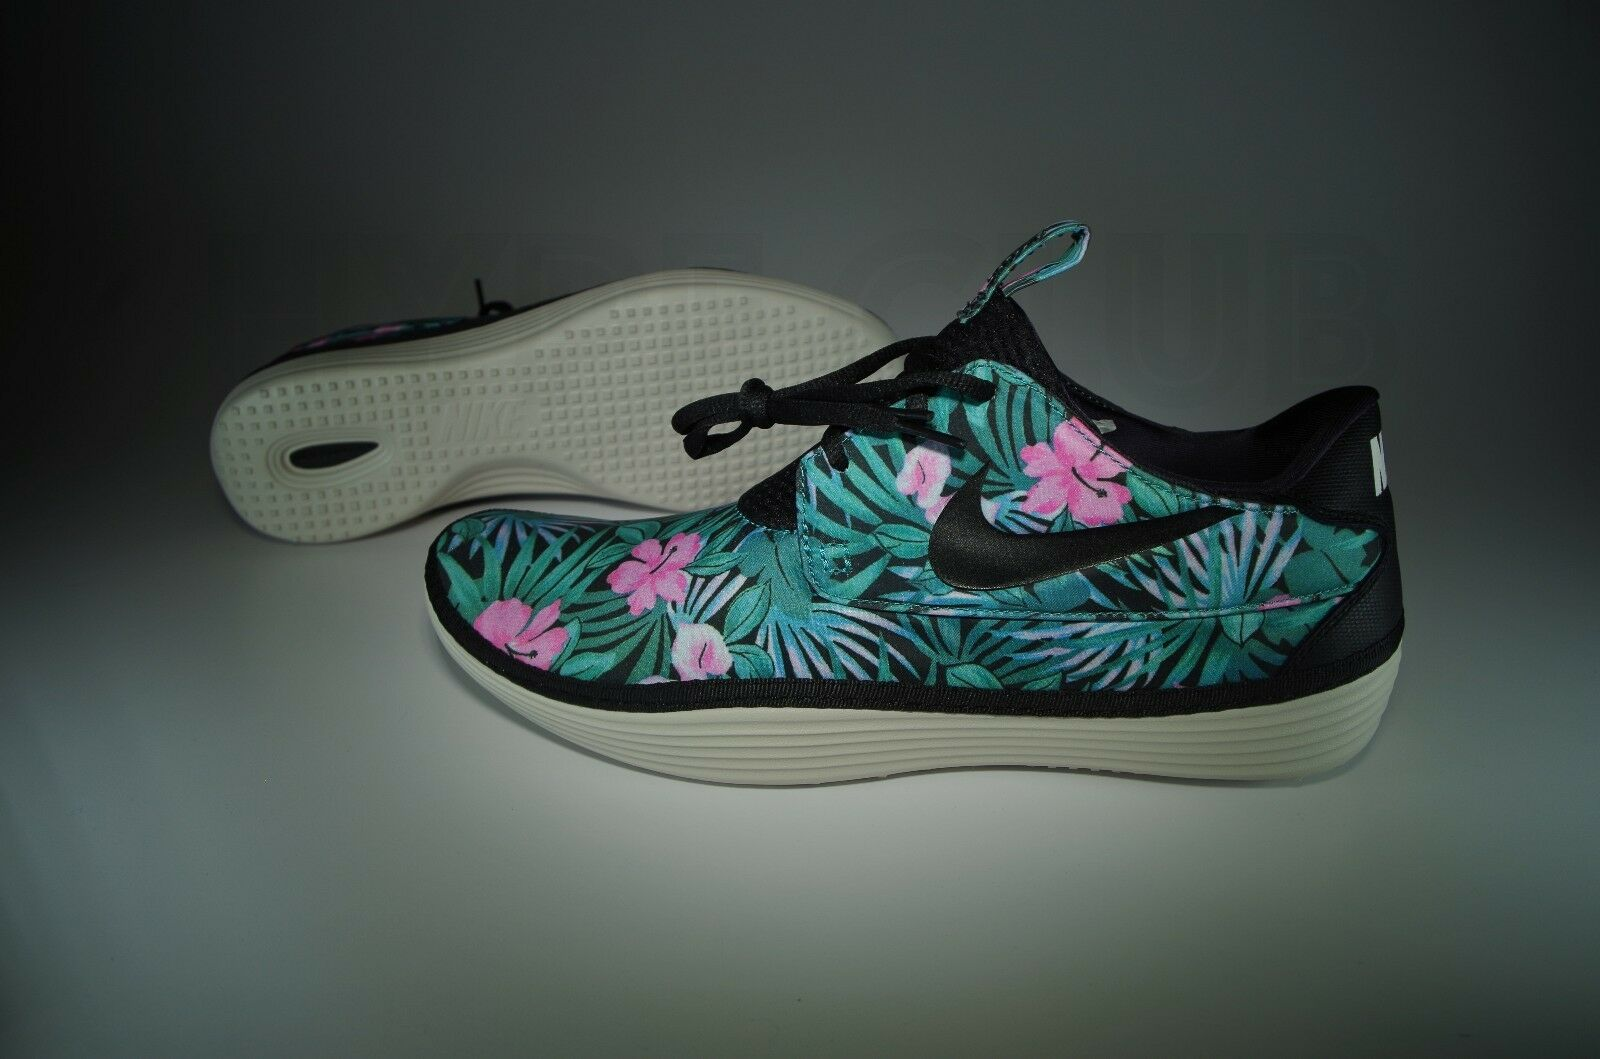 BRAND NEW NIKE SOLARSOFT MOCCASIN SP FLORAL HAWAIIAN SIZE 11 BLACK WOVEN YEEZY